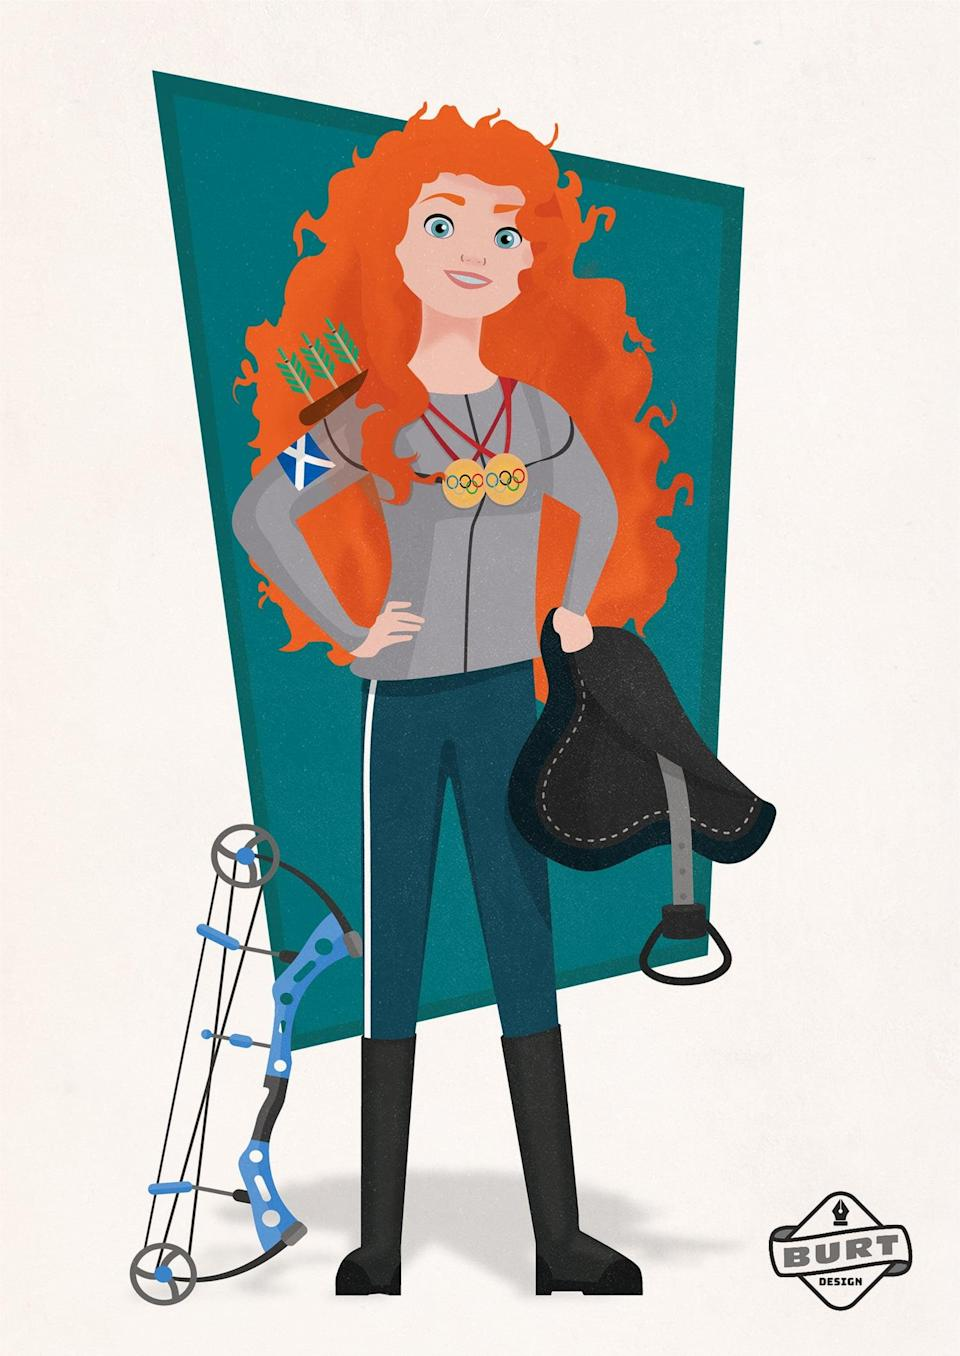 """<p><strong>Matt's explanation:</strong> """"Merida competed for her own hand in marriage, so why not for a gold medal in the Olympics? Skilled in both archery and horseback riding, Merida competes for her country in multiple events. She's already won multiple golds but aims to add a few more in the 2020 Olympic Games in Tokyo.""""</p>"""